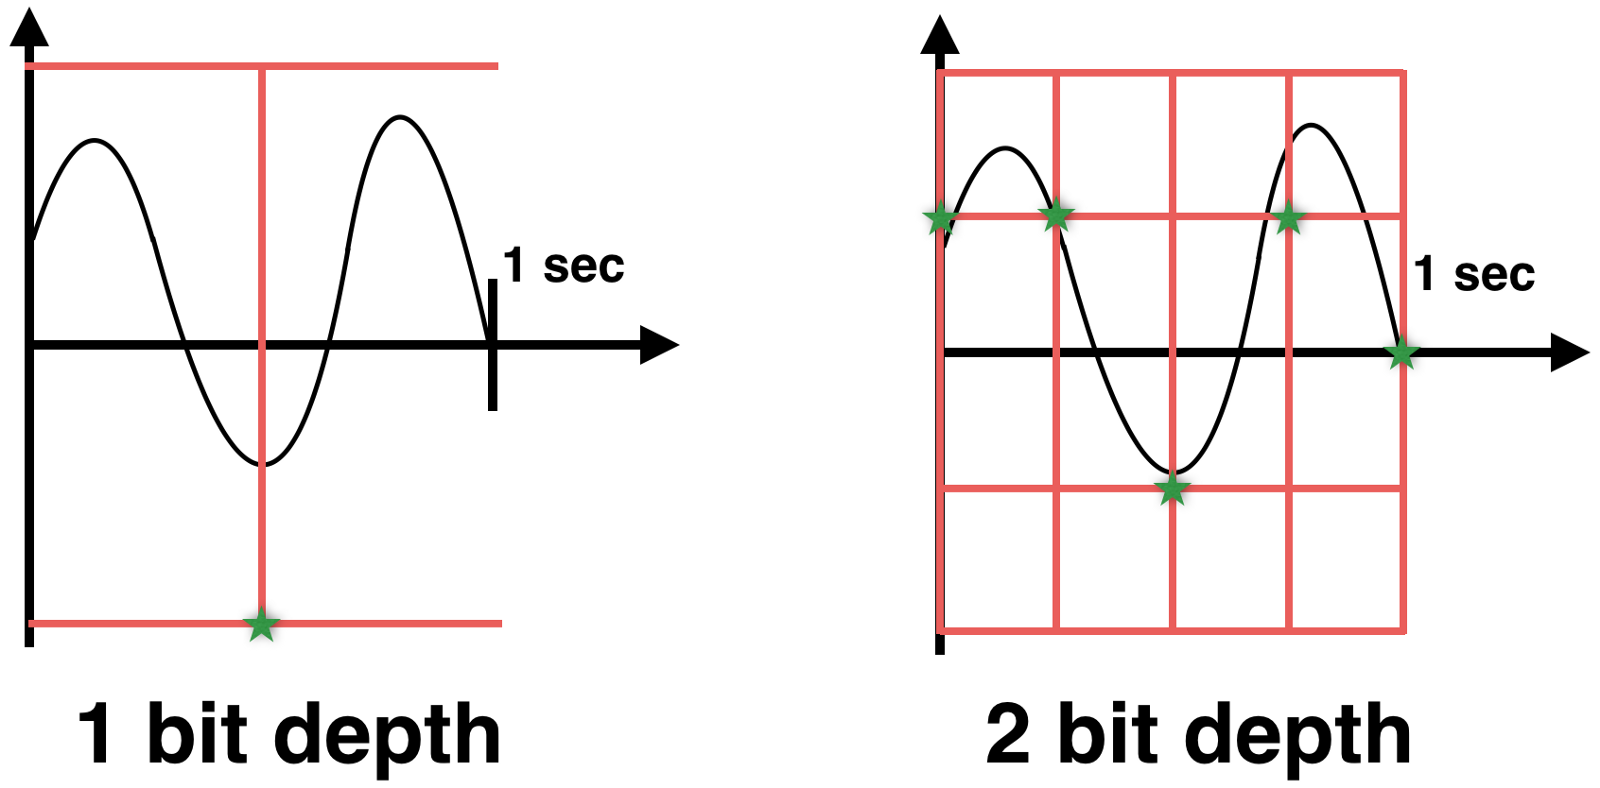 Core Audio Introduction Inside Shazam How To Build Bird Sound Effects Generator Circuit So If We Will Record Our Wave With 5 Hz Sample Rate And 2 Bit Depth Be Able Approximate Or Interpolate Later